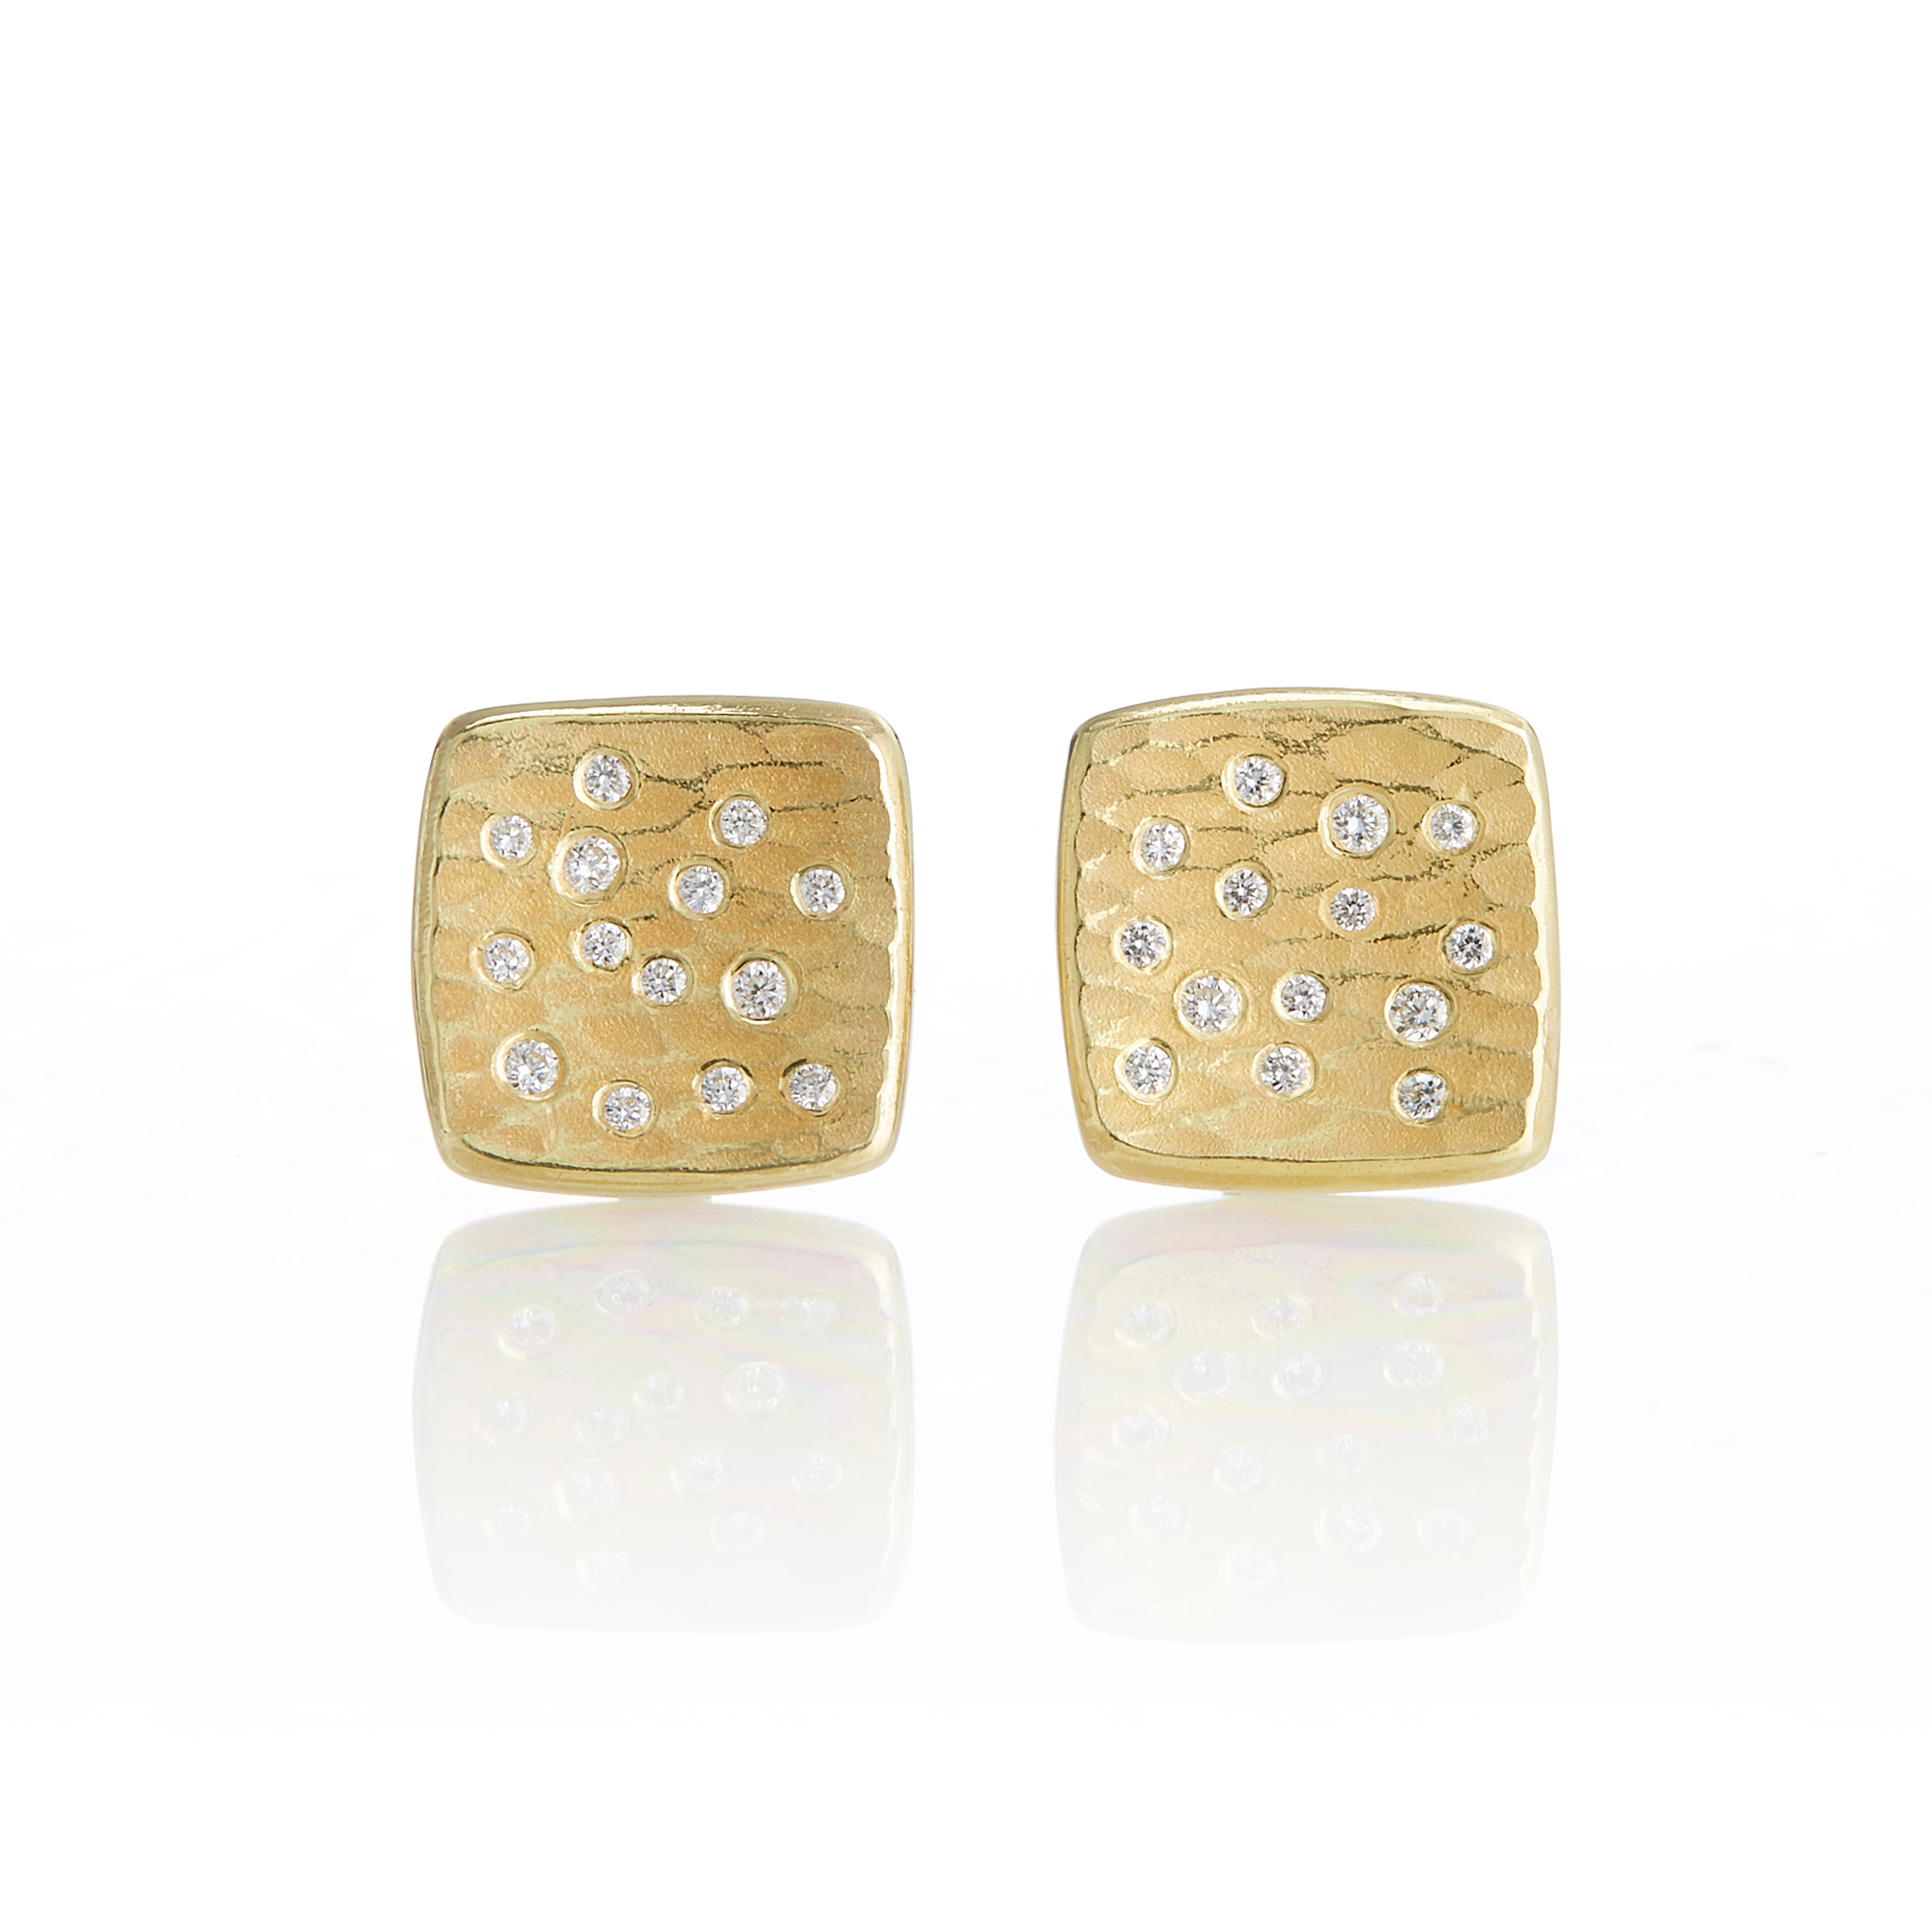 Barbara Heinrich Small Square Glacier Earrings